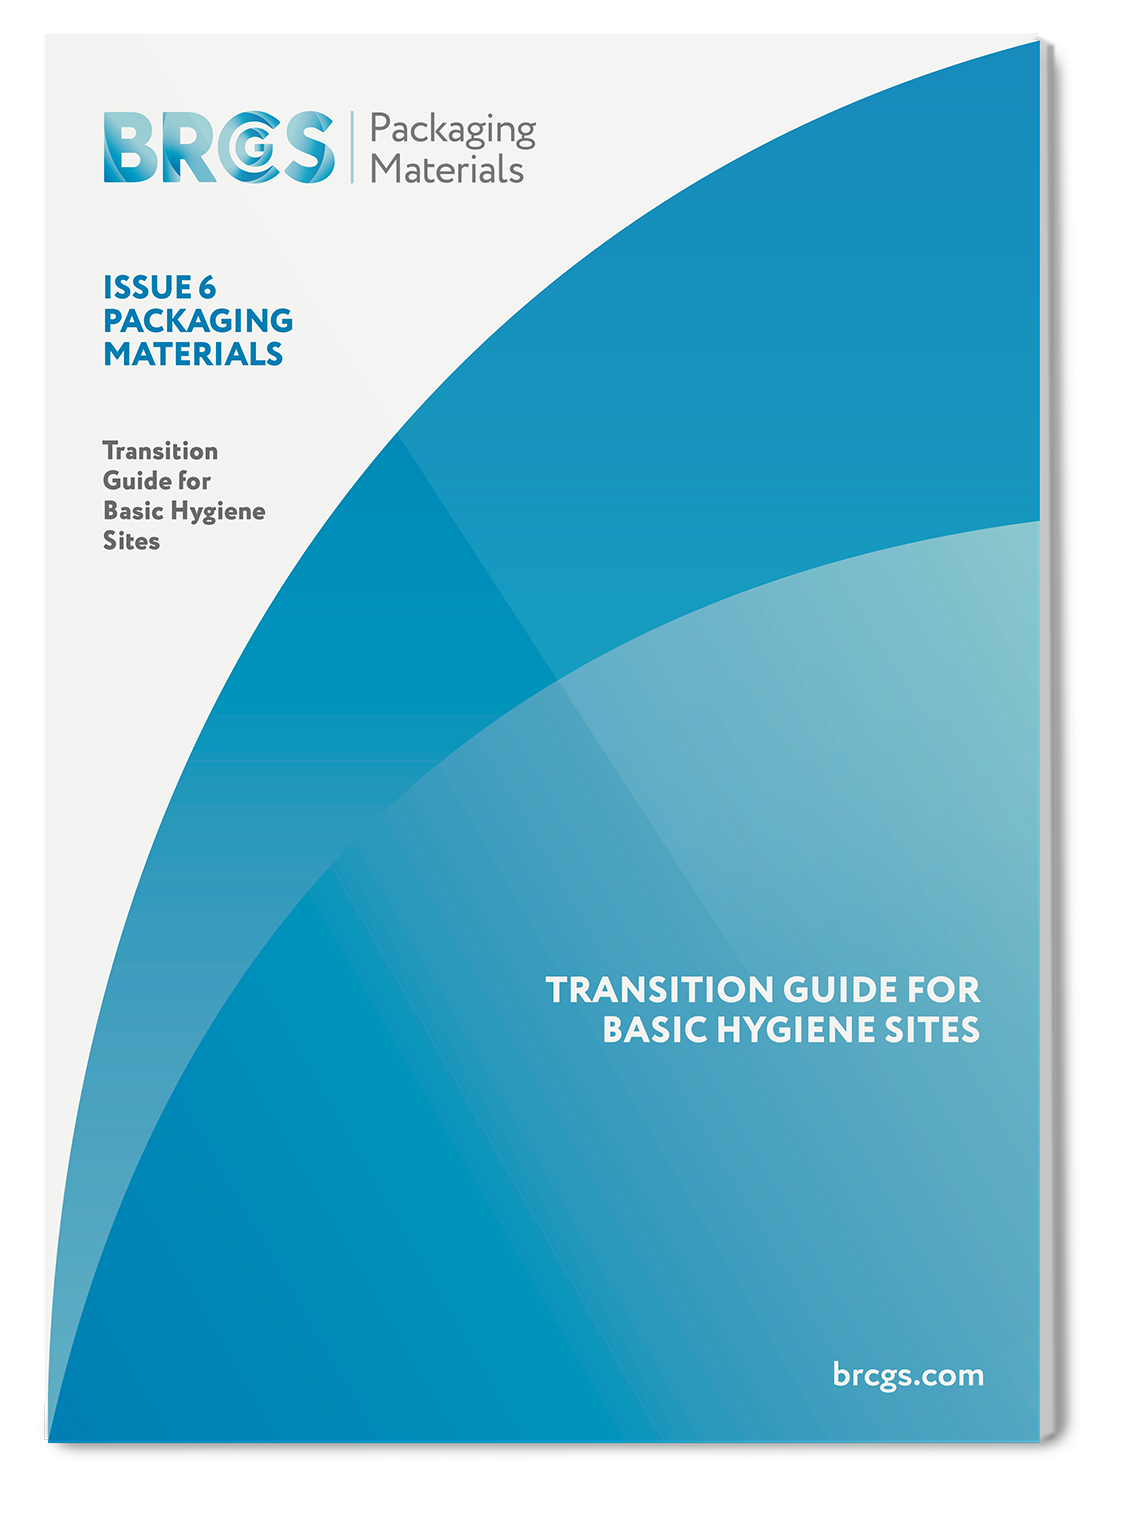 PACKAGING MATERIALS ISSUE 6 TRANSITION GUIDE FOR BASIC HYGIENE SITES